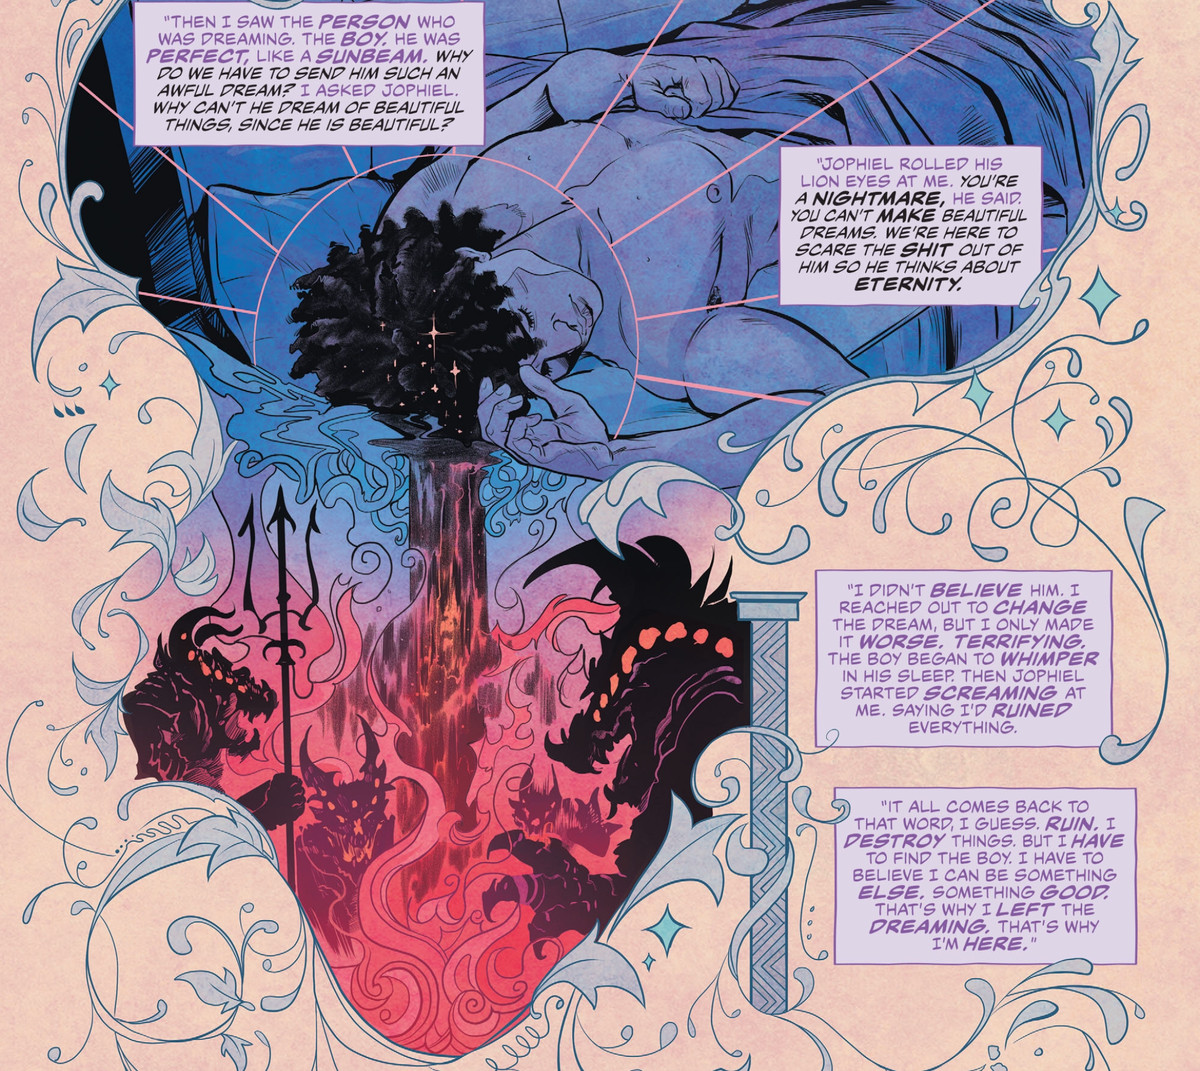 Ruin, a nightmare, describes seeing his first charge and instantly falling in love, unable to perform his function of giving the beautiful man a nightmare, in The Dreaming: Waking Hours #2, DC Comics (2020).